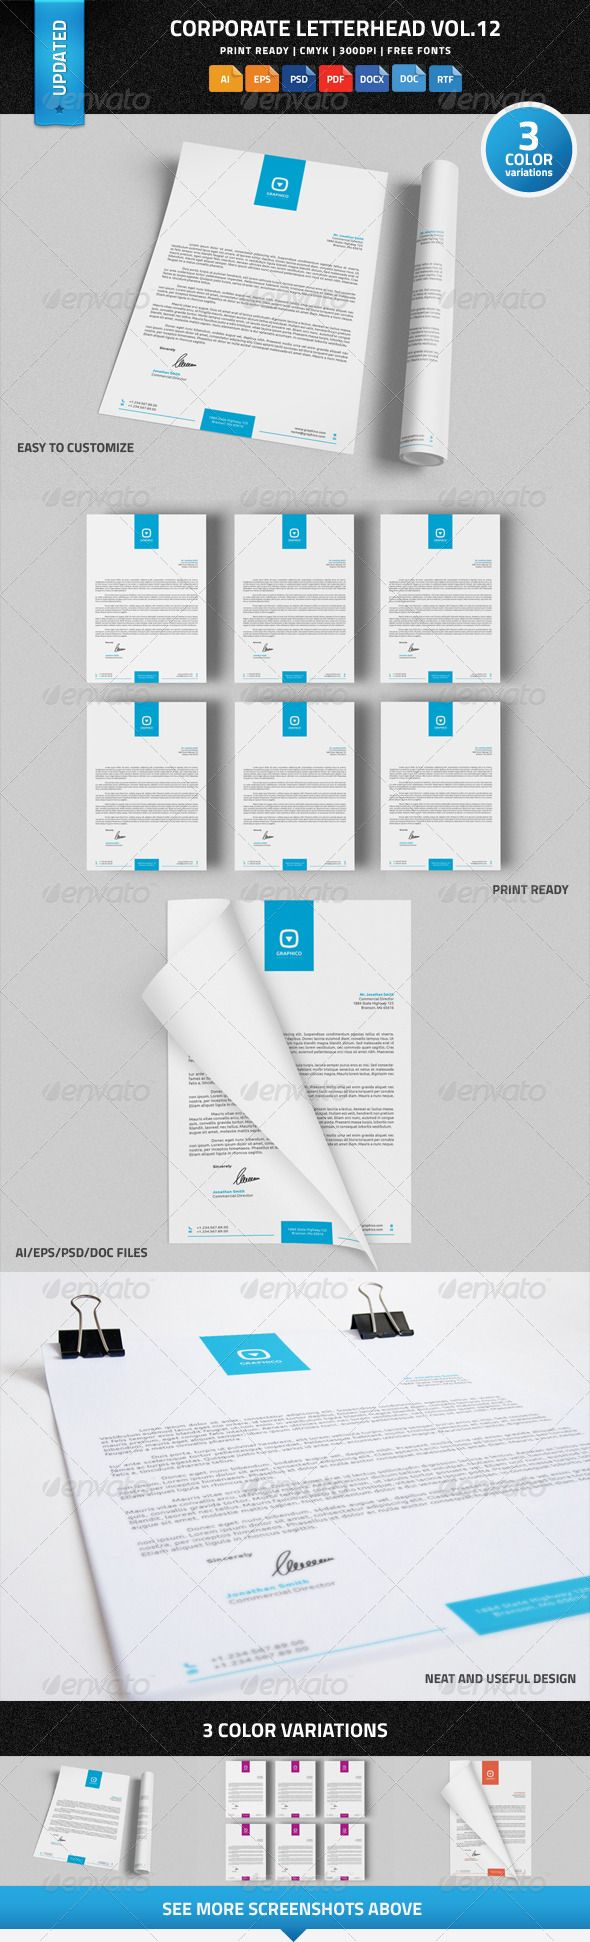 Print page color word 2010 - Corporate Letterhead Vol 12 With Ms Word Doc Docx